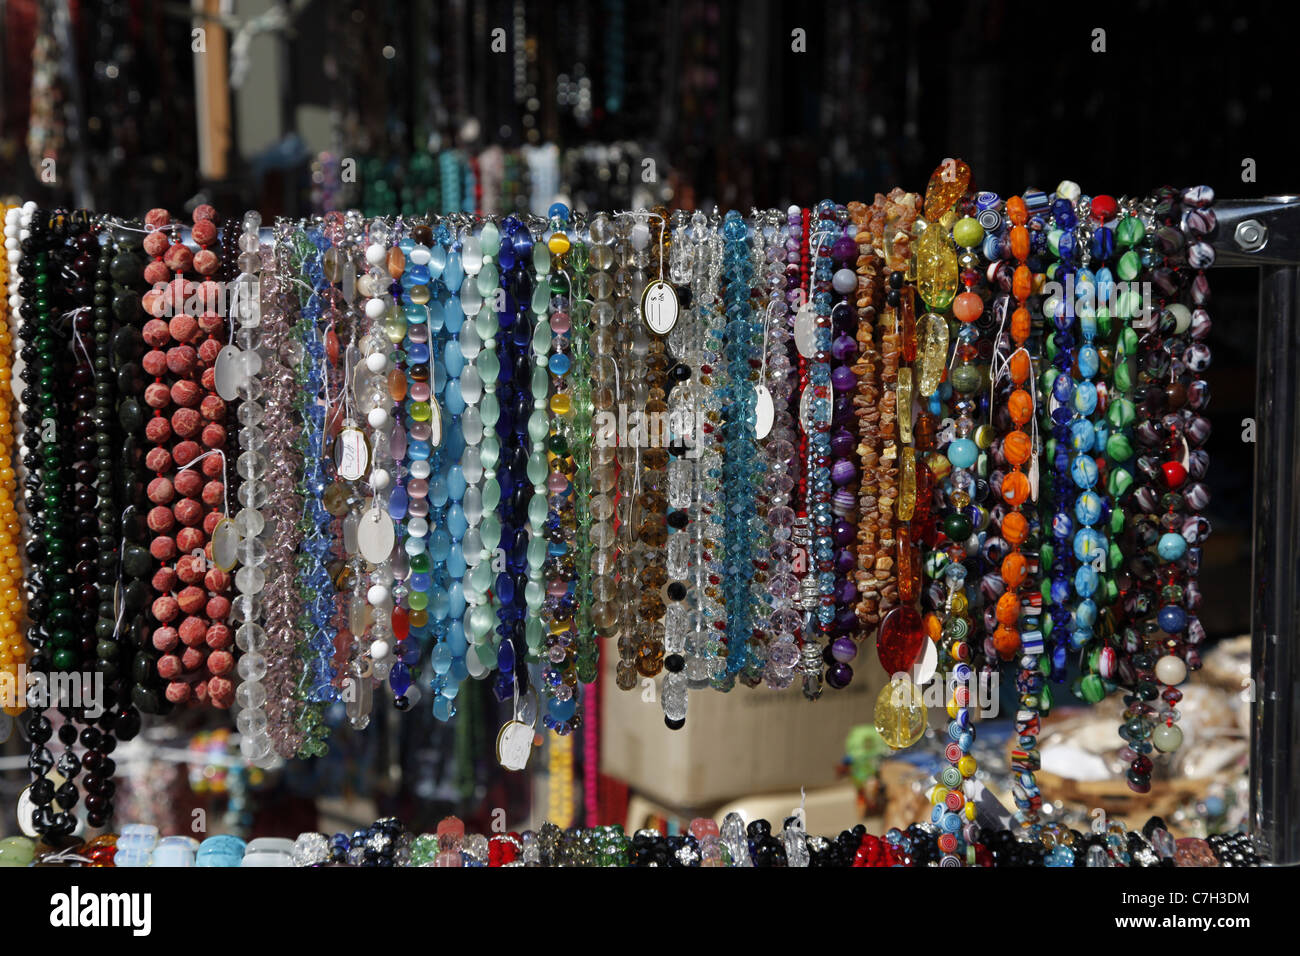 BANGLES BRACELETS NECKLACES SEVASTOPOL CRIMEA UKRAINE 02 September 2011 - Stock Image